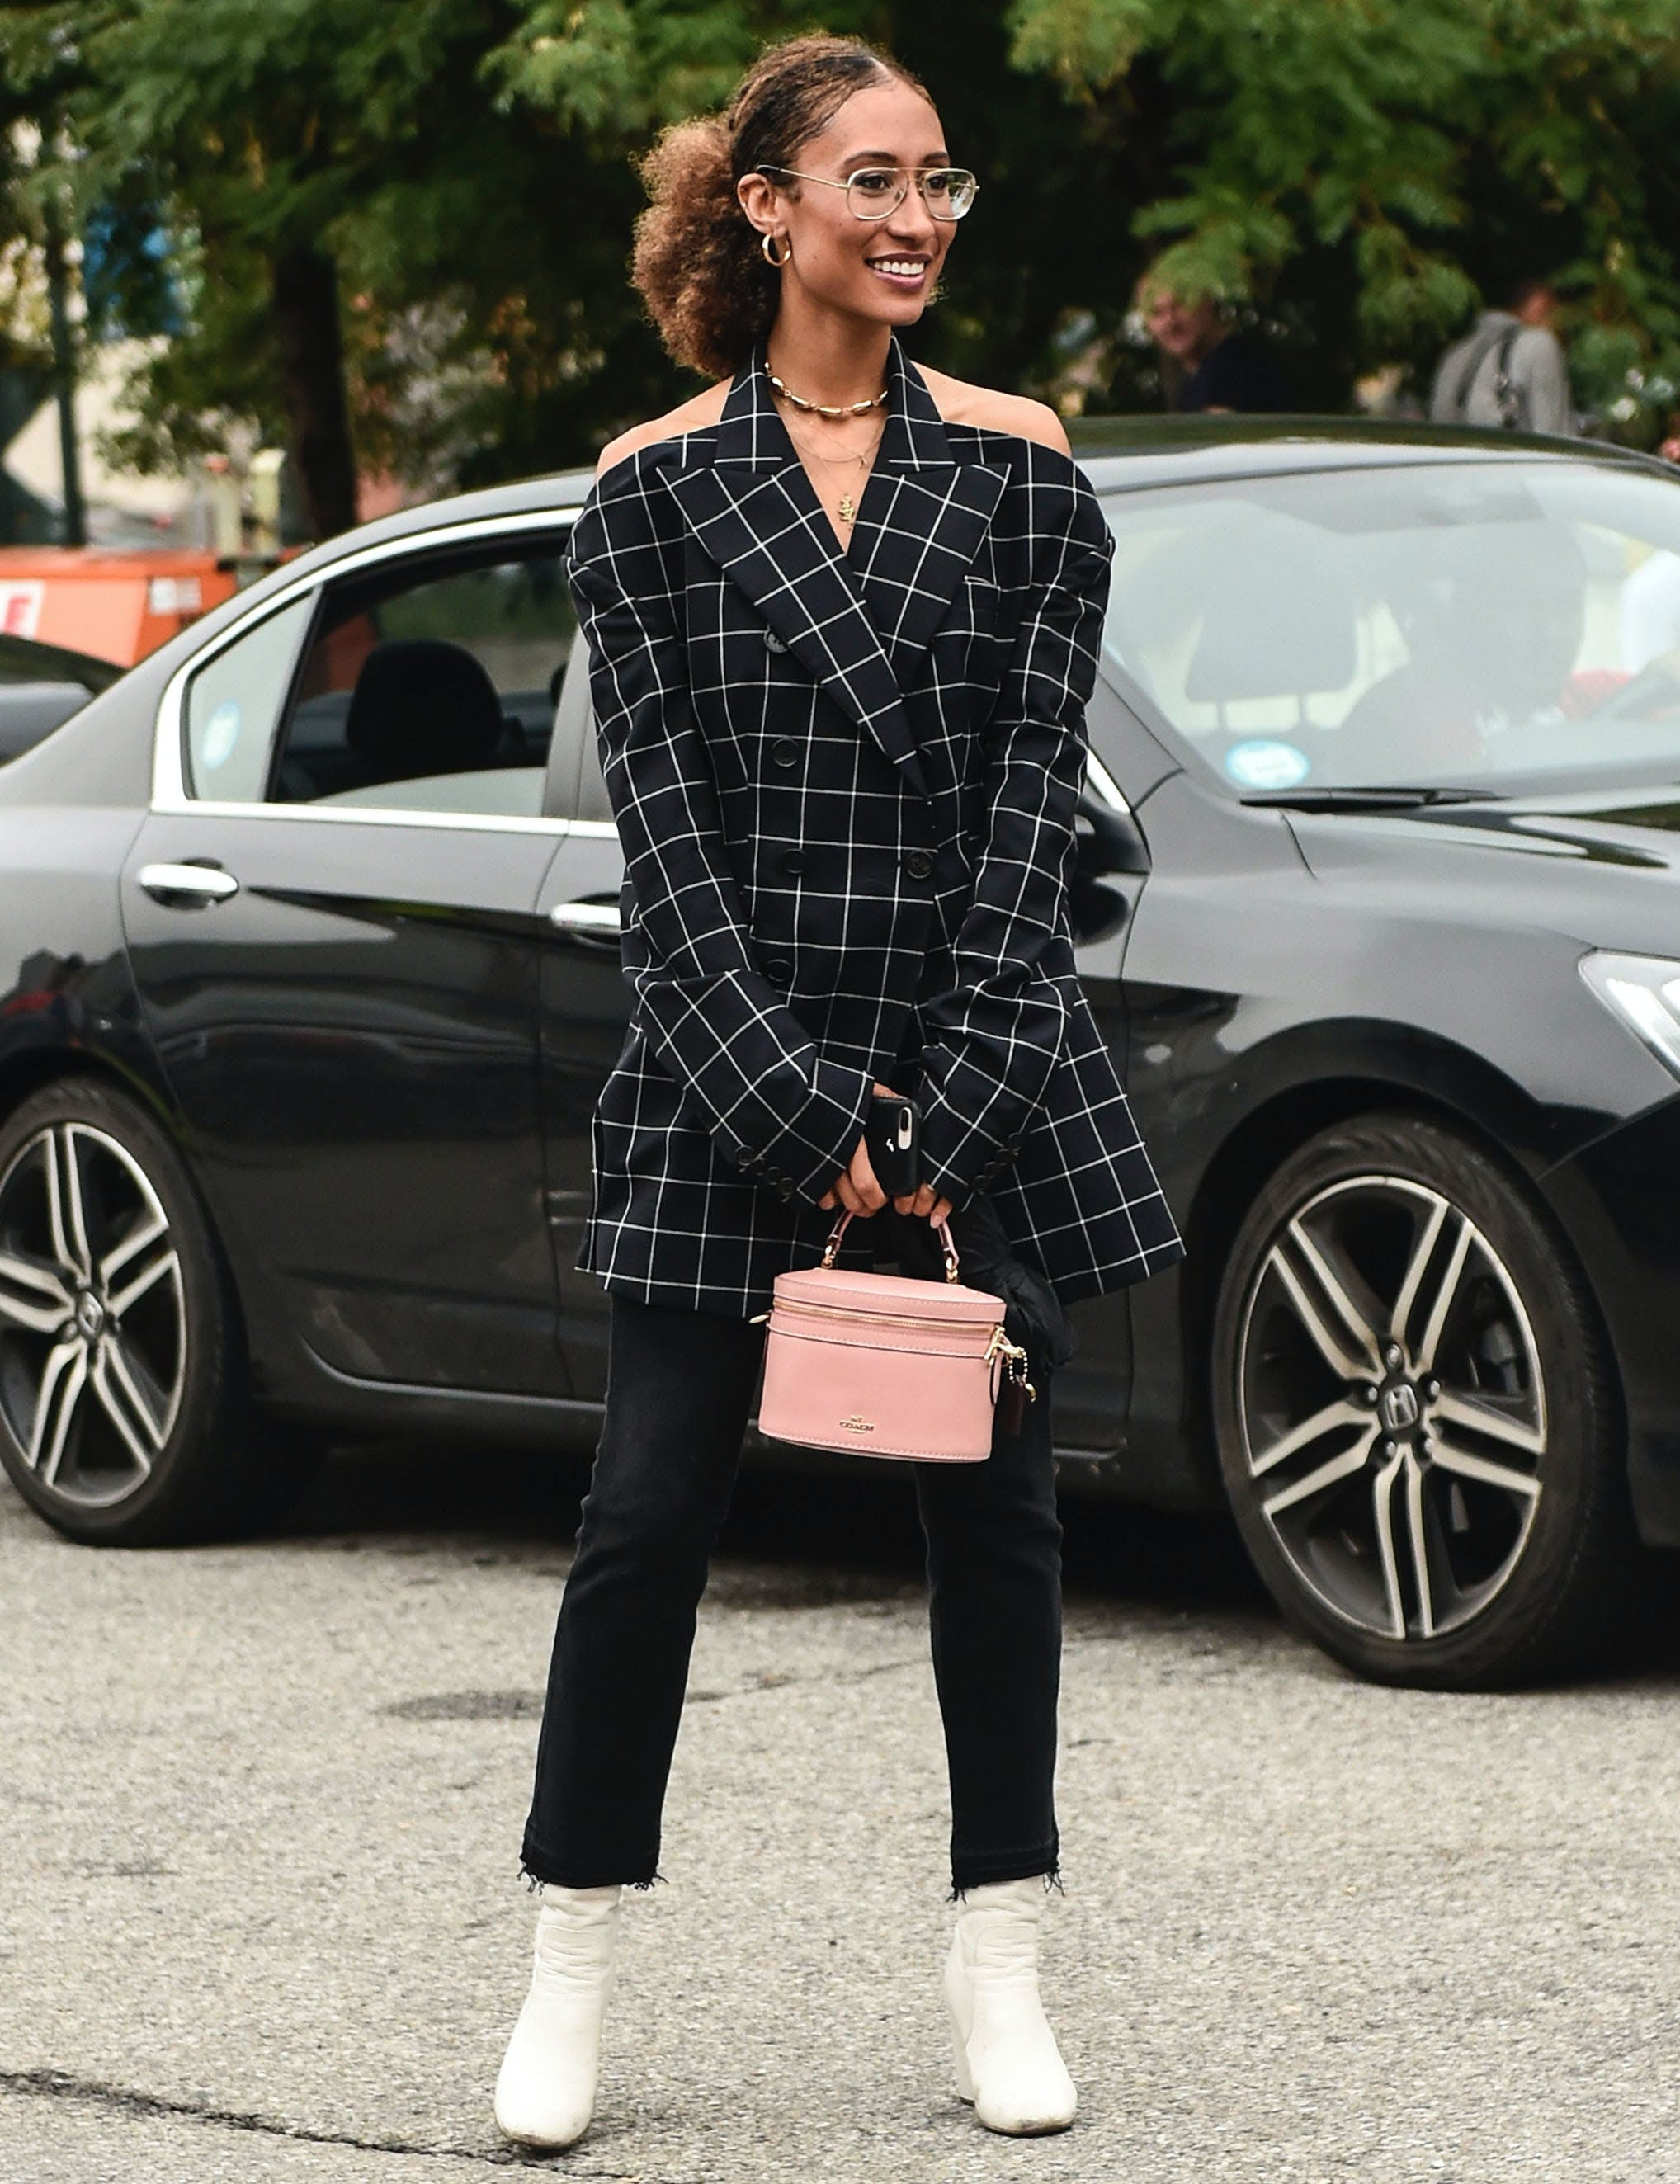 woman wearing black and white with a pink handbag